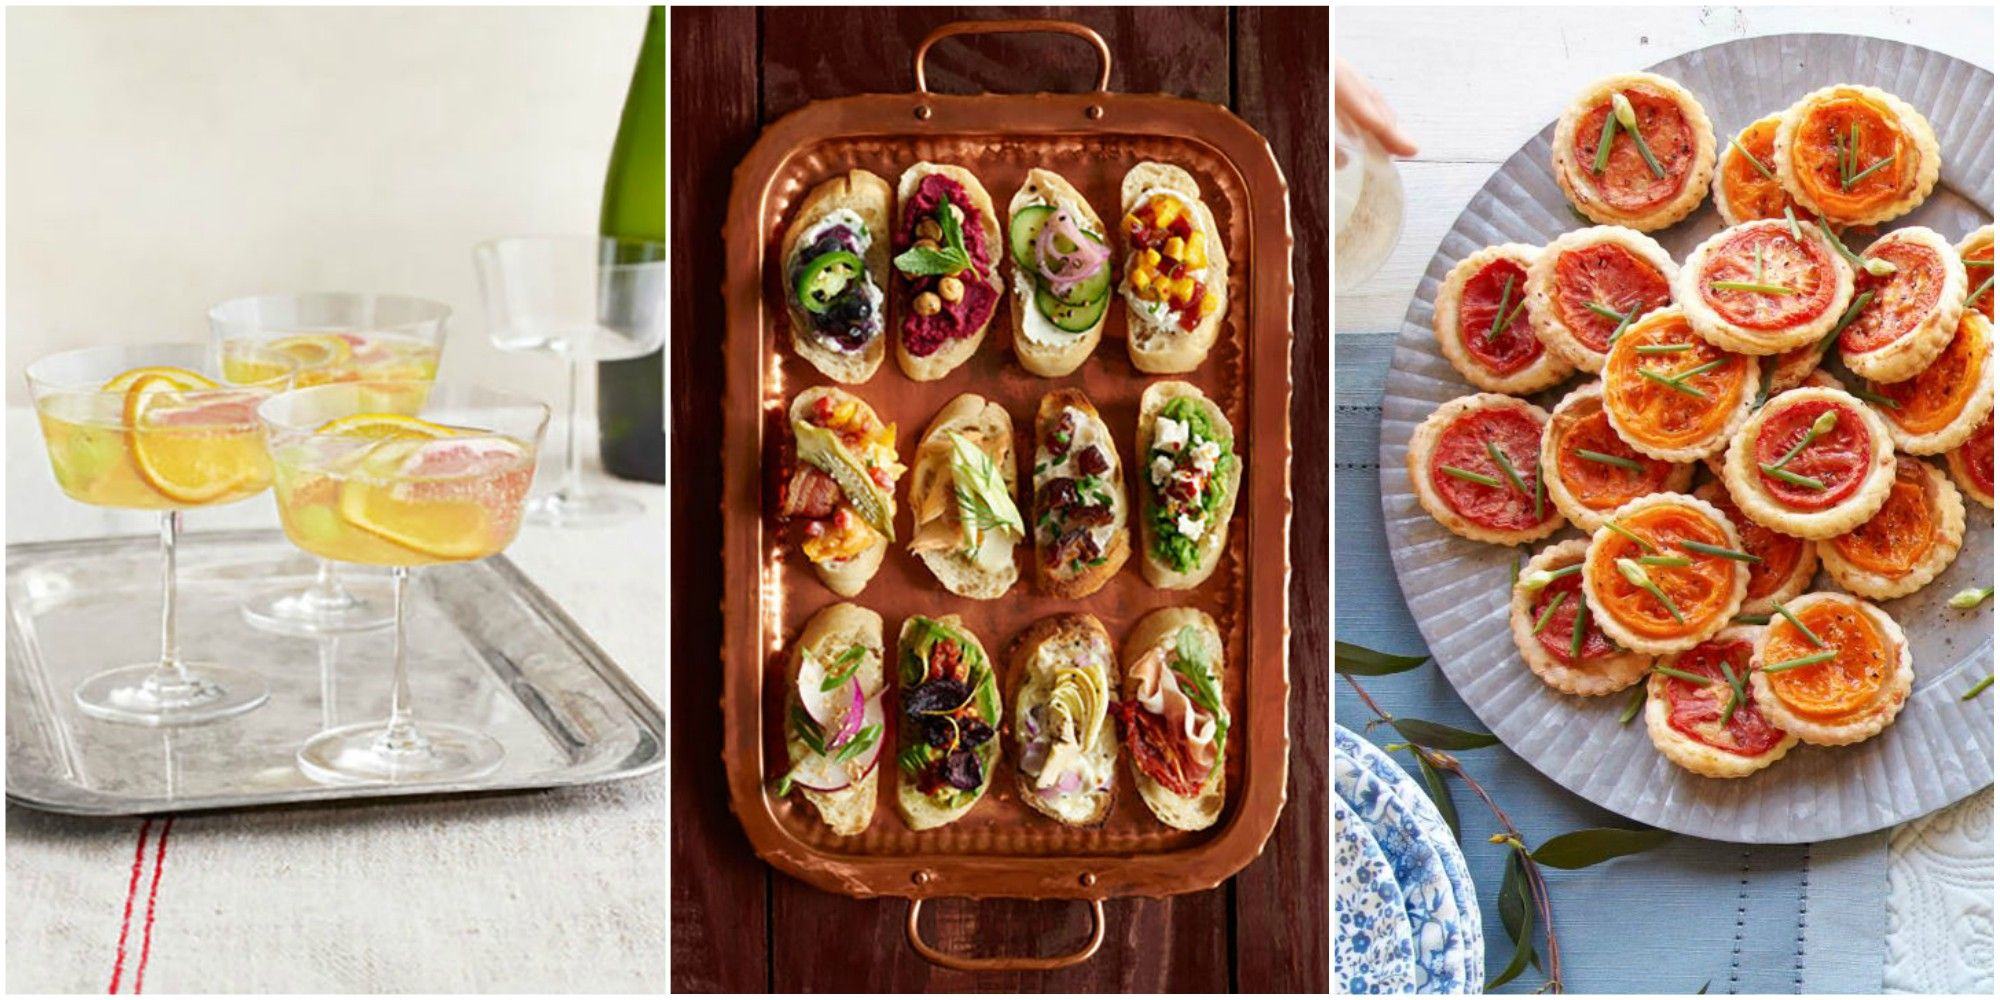 25 New Years Eve Food Ideas - New Years Eve Dinner Recipes